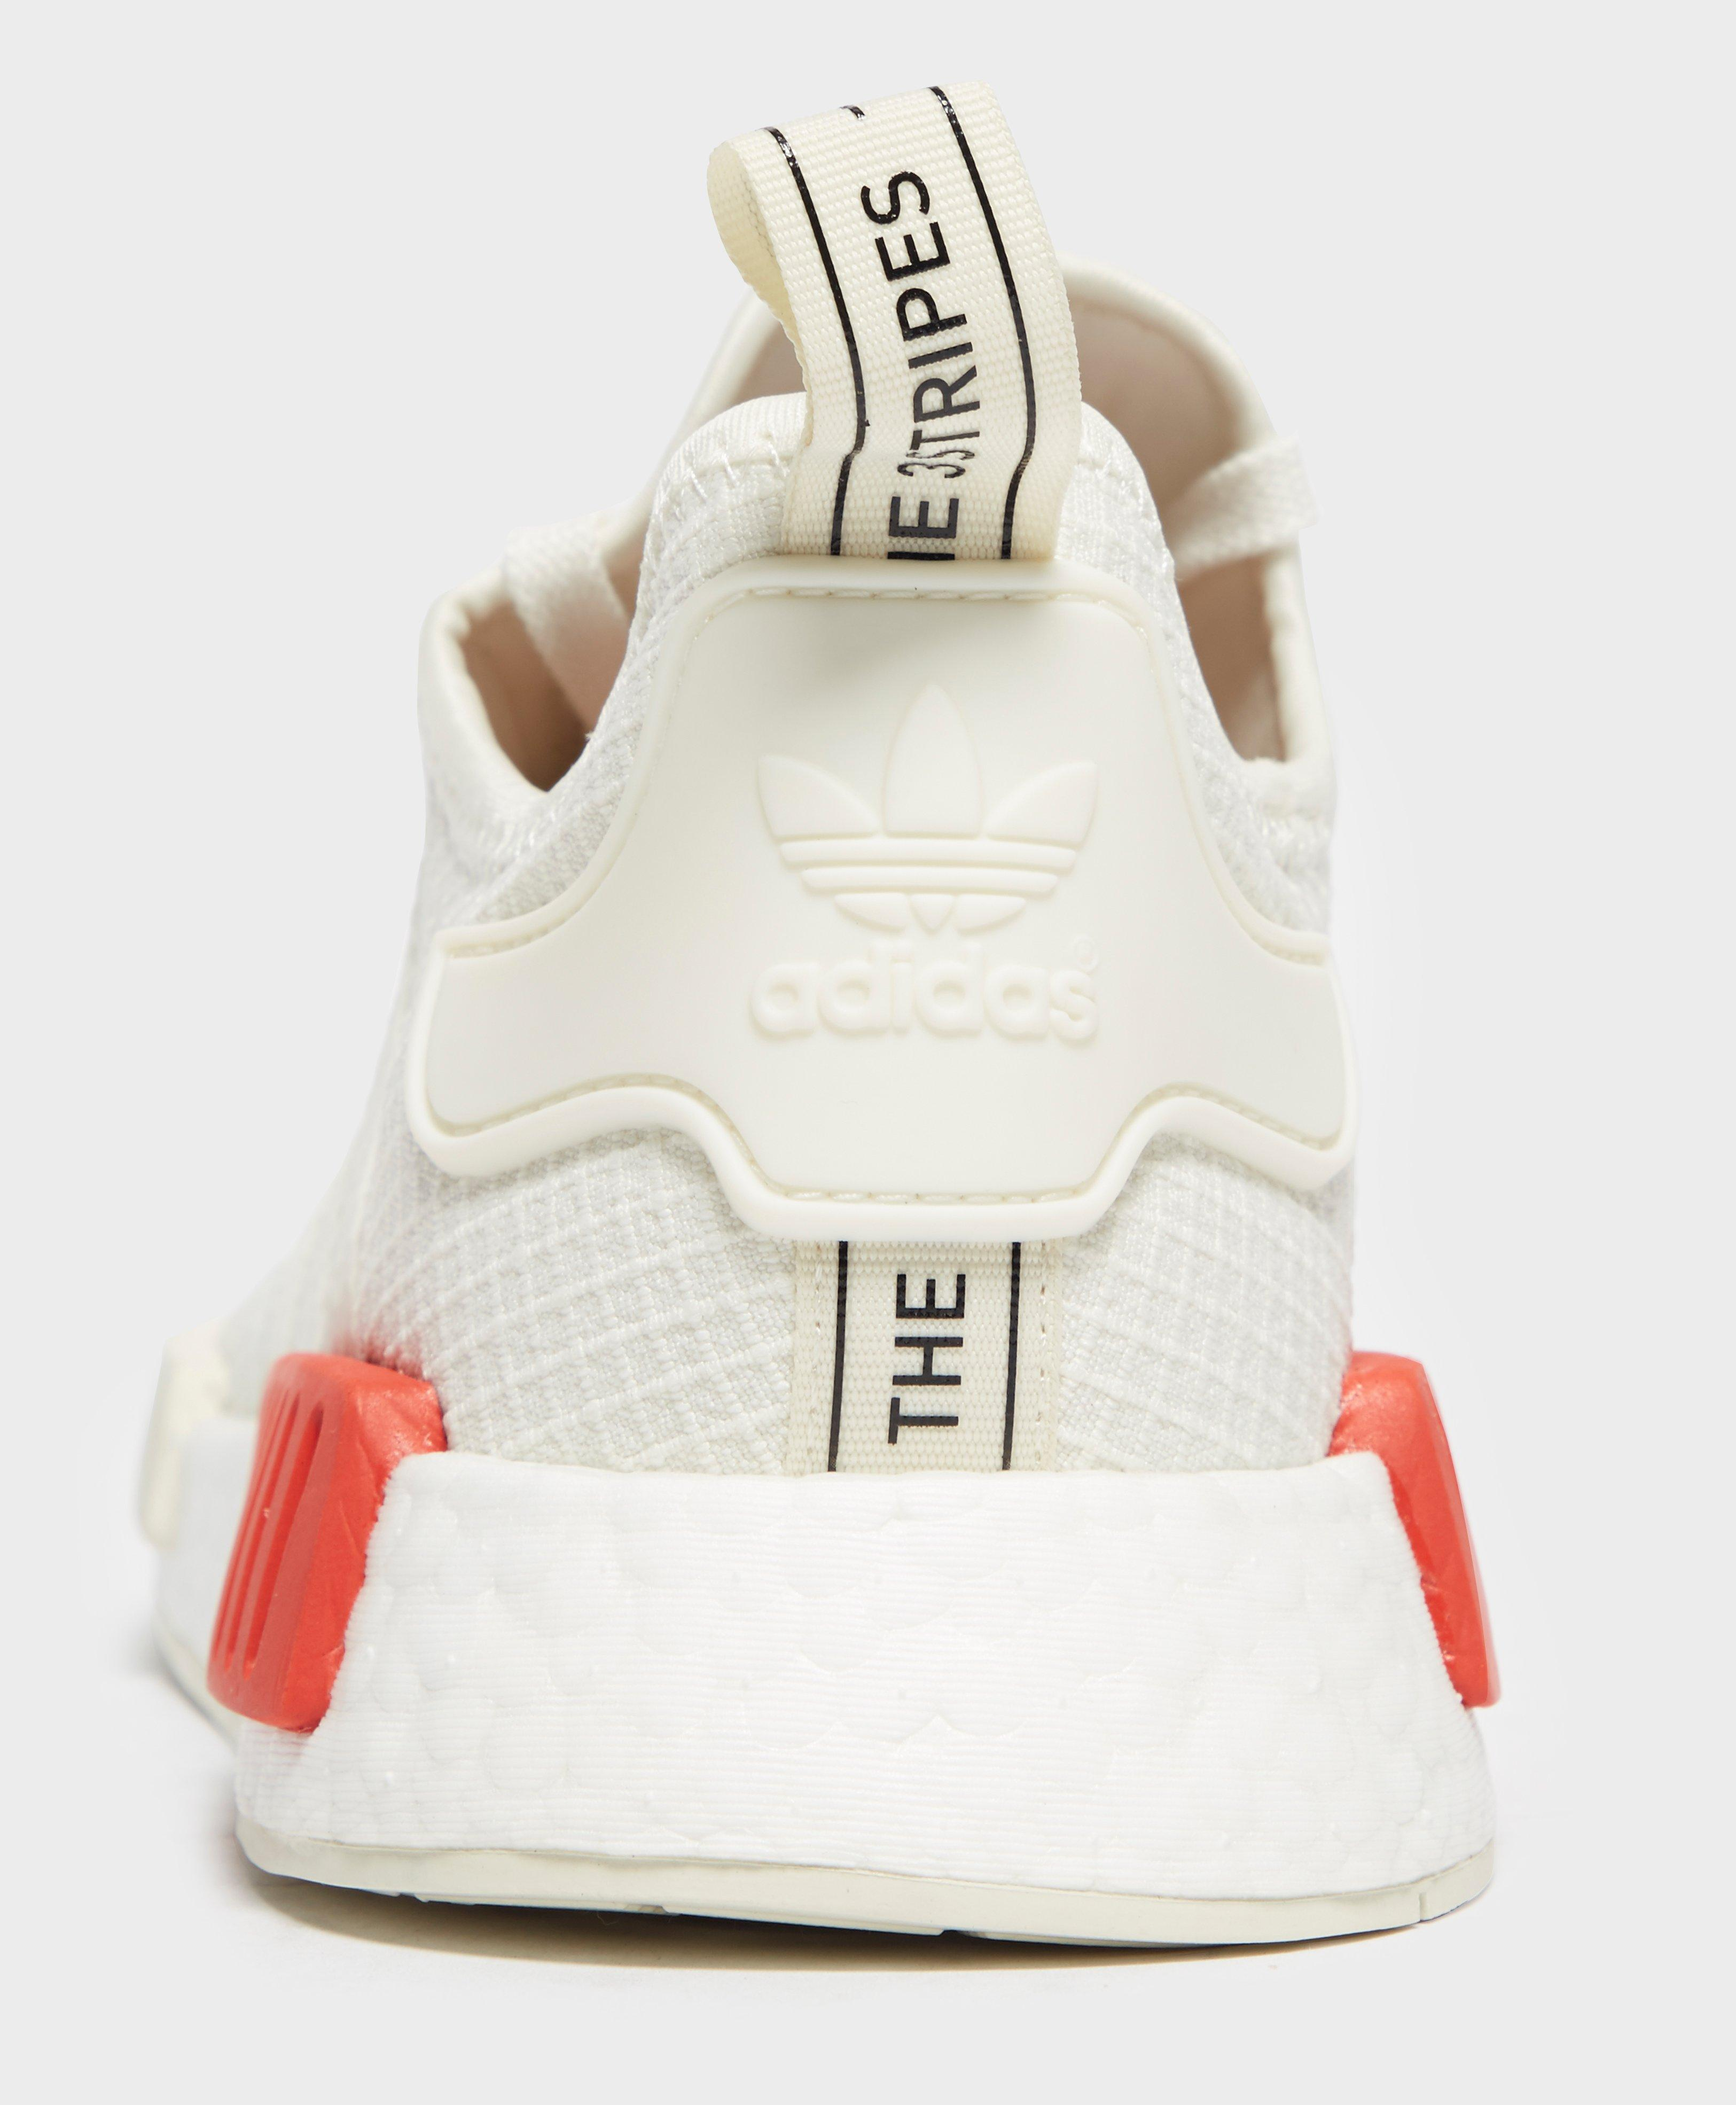 Adidas Originals - White Nmd R1 Ripstop for Men - Lyst. View fullscreen 7ad396b7a